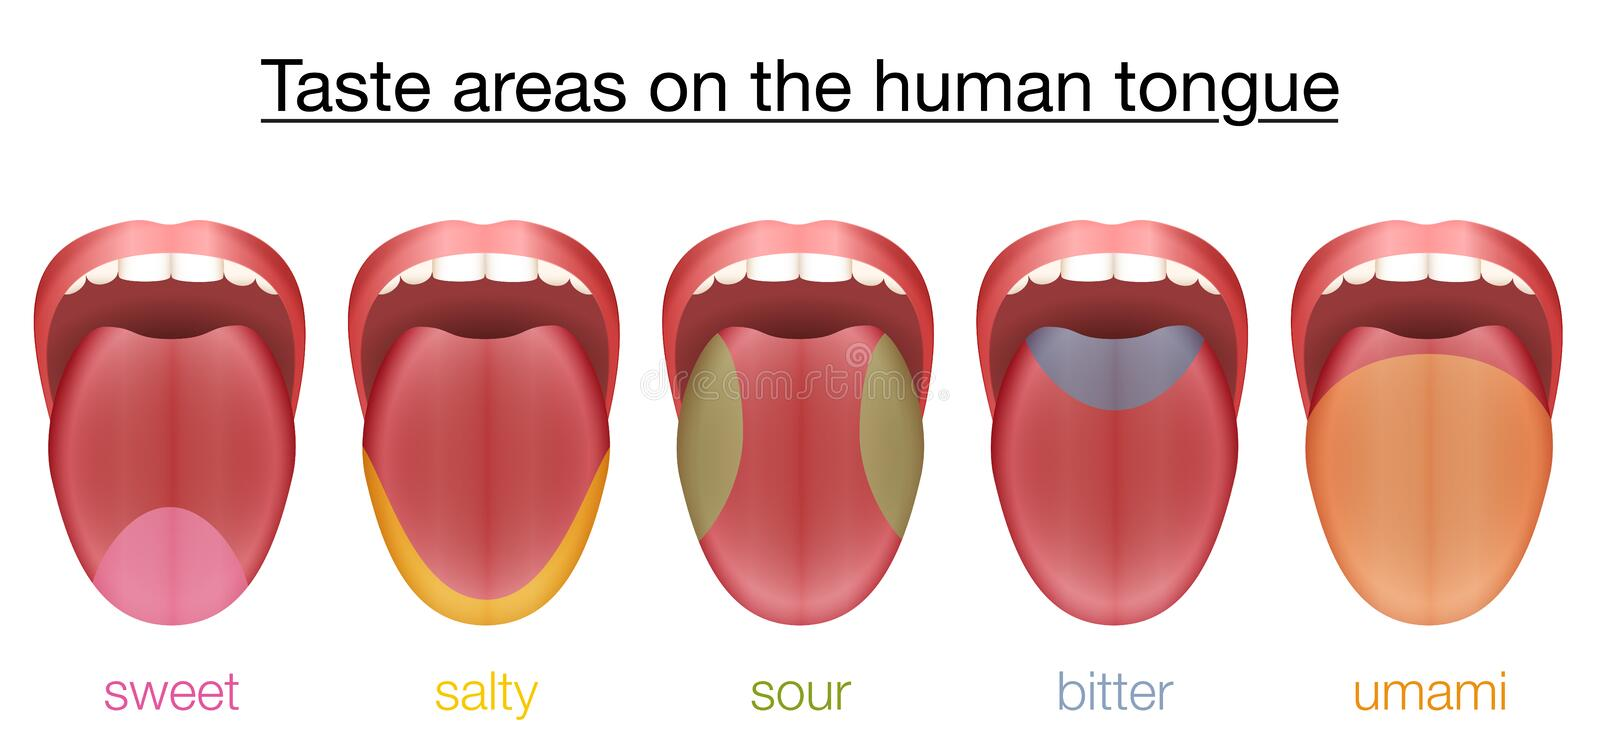 Tongue Sweet Salty Sour Bitter Umami Taste. Taste areas of the human tongue - sweet, salty, sour, bitter and umami - with colored regions of the appropriate vector illustration